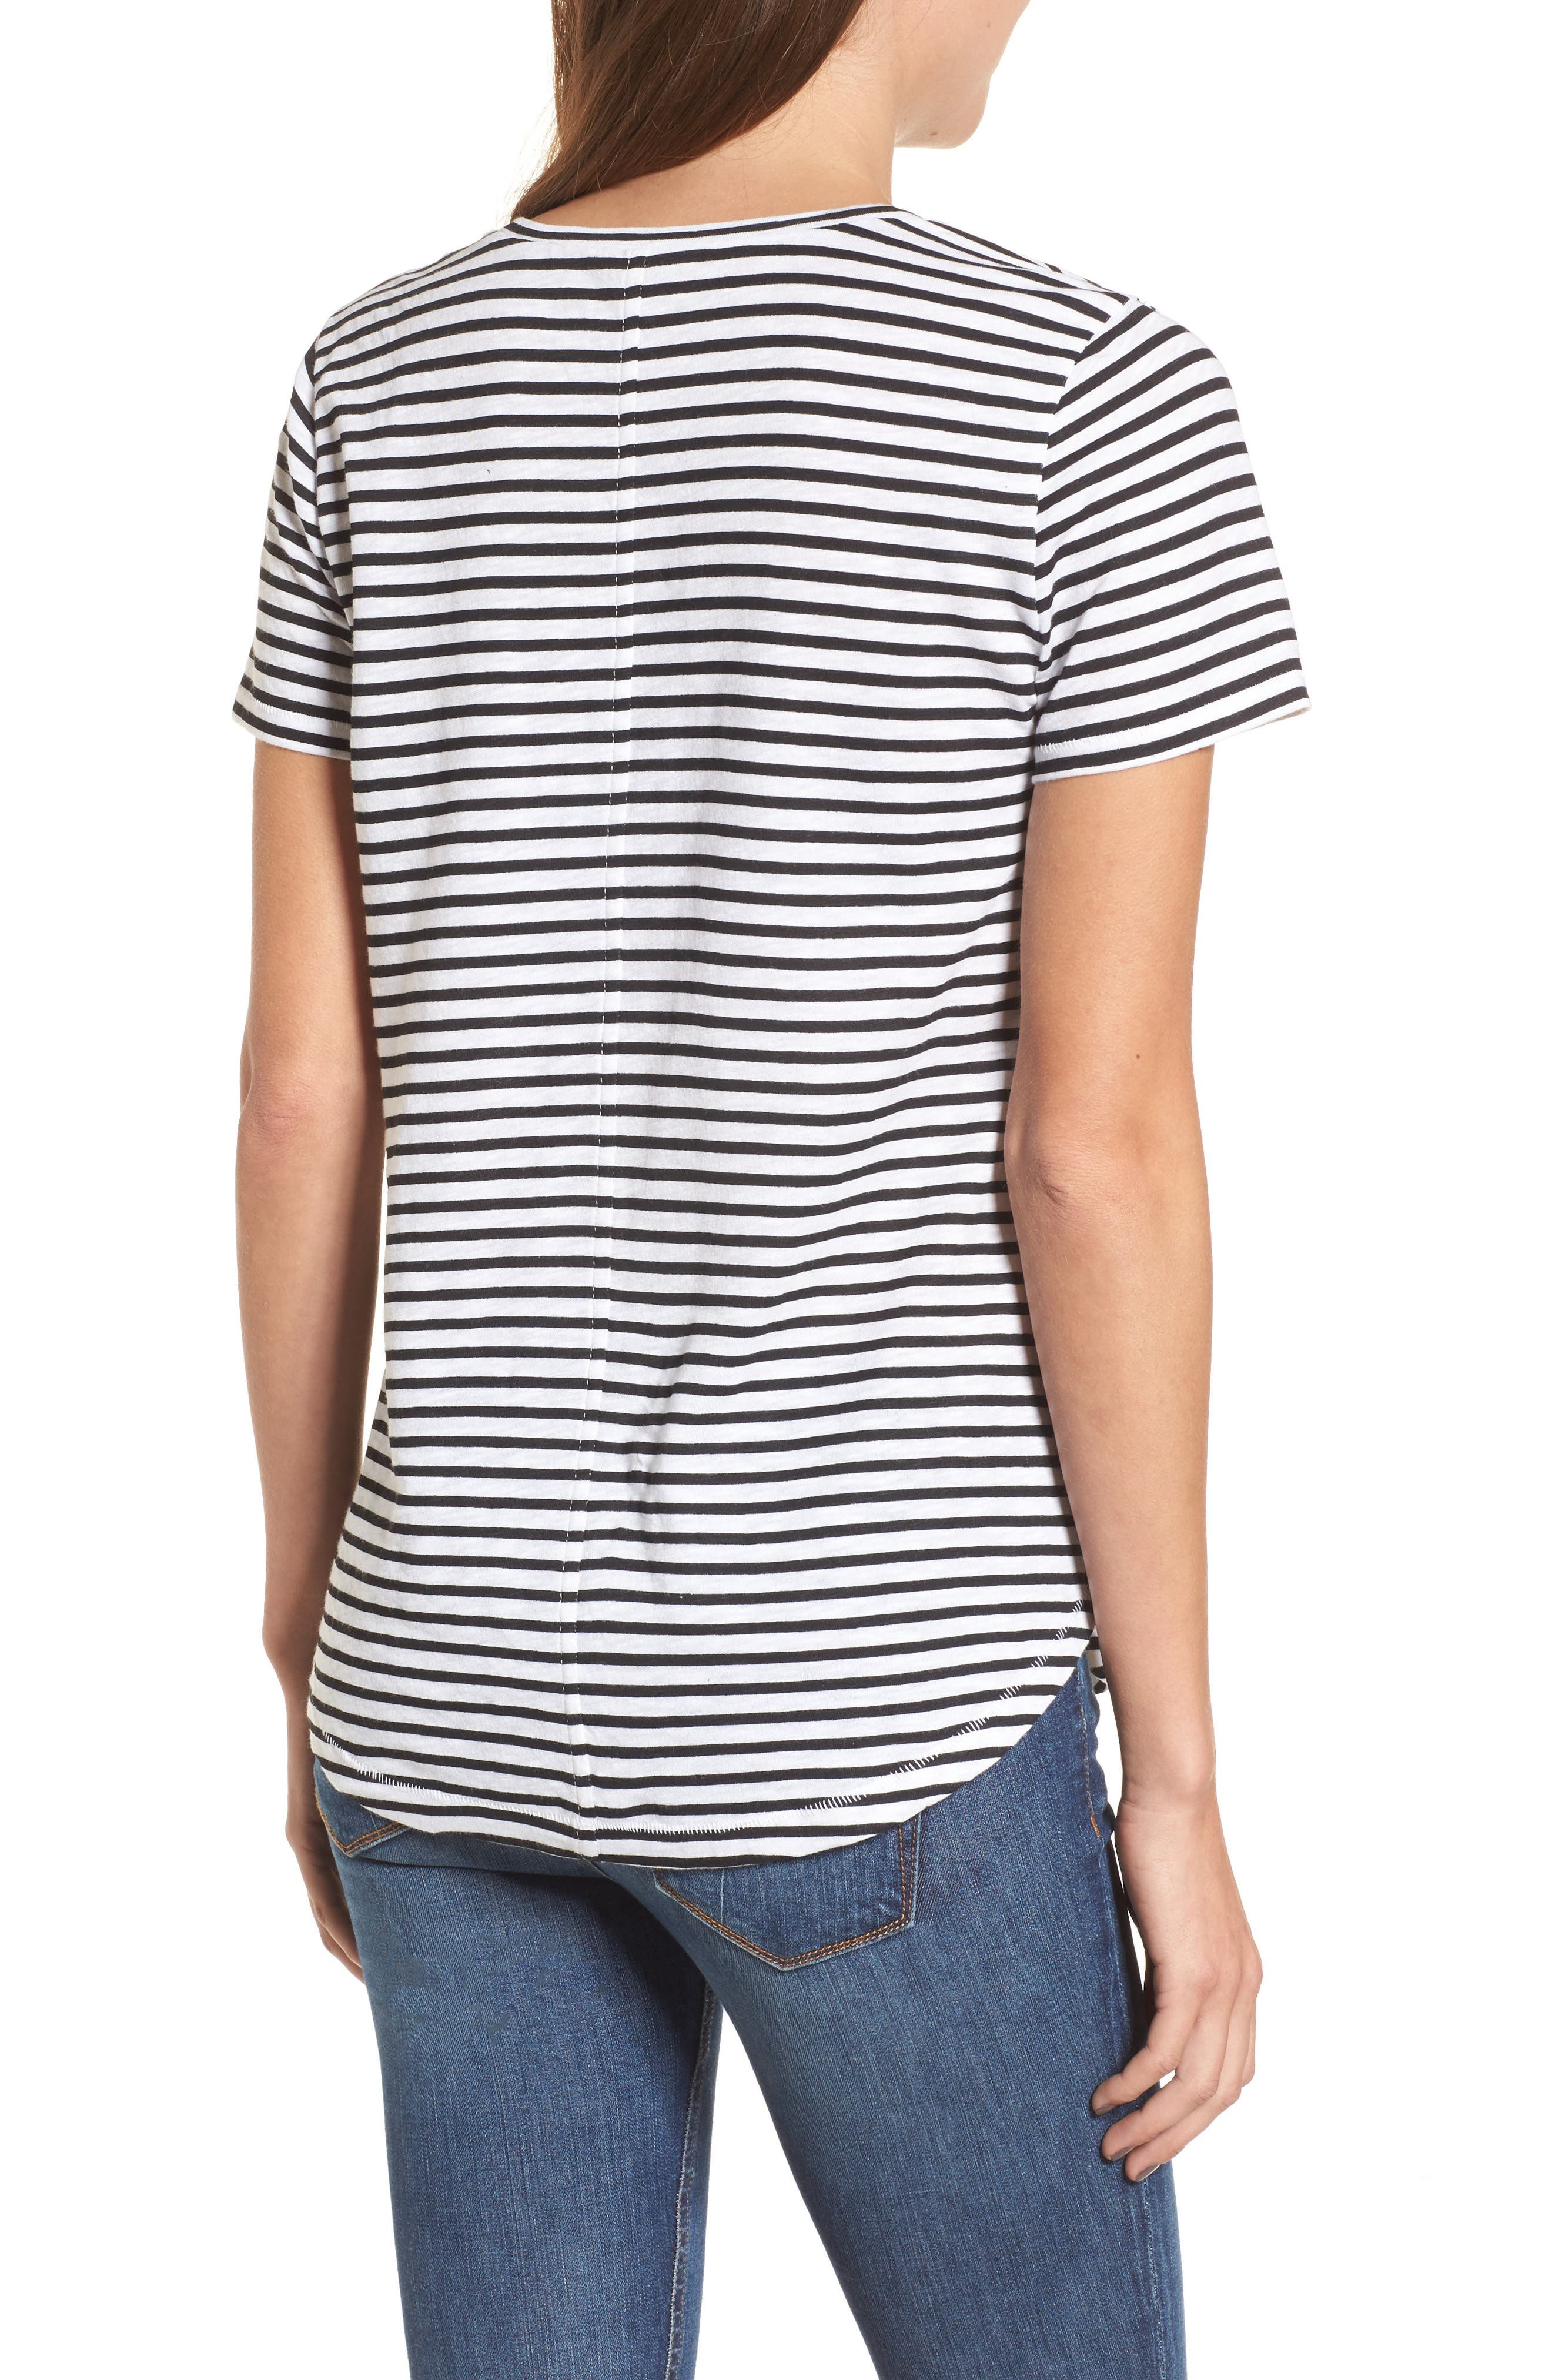 Shirt for Women On Sale, White, Cotton, 2017, 10 12 14 8 Fay